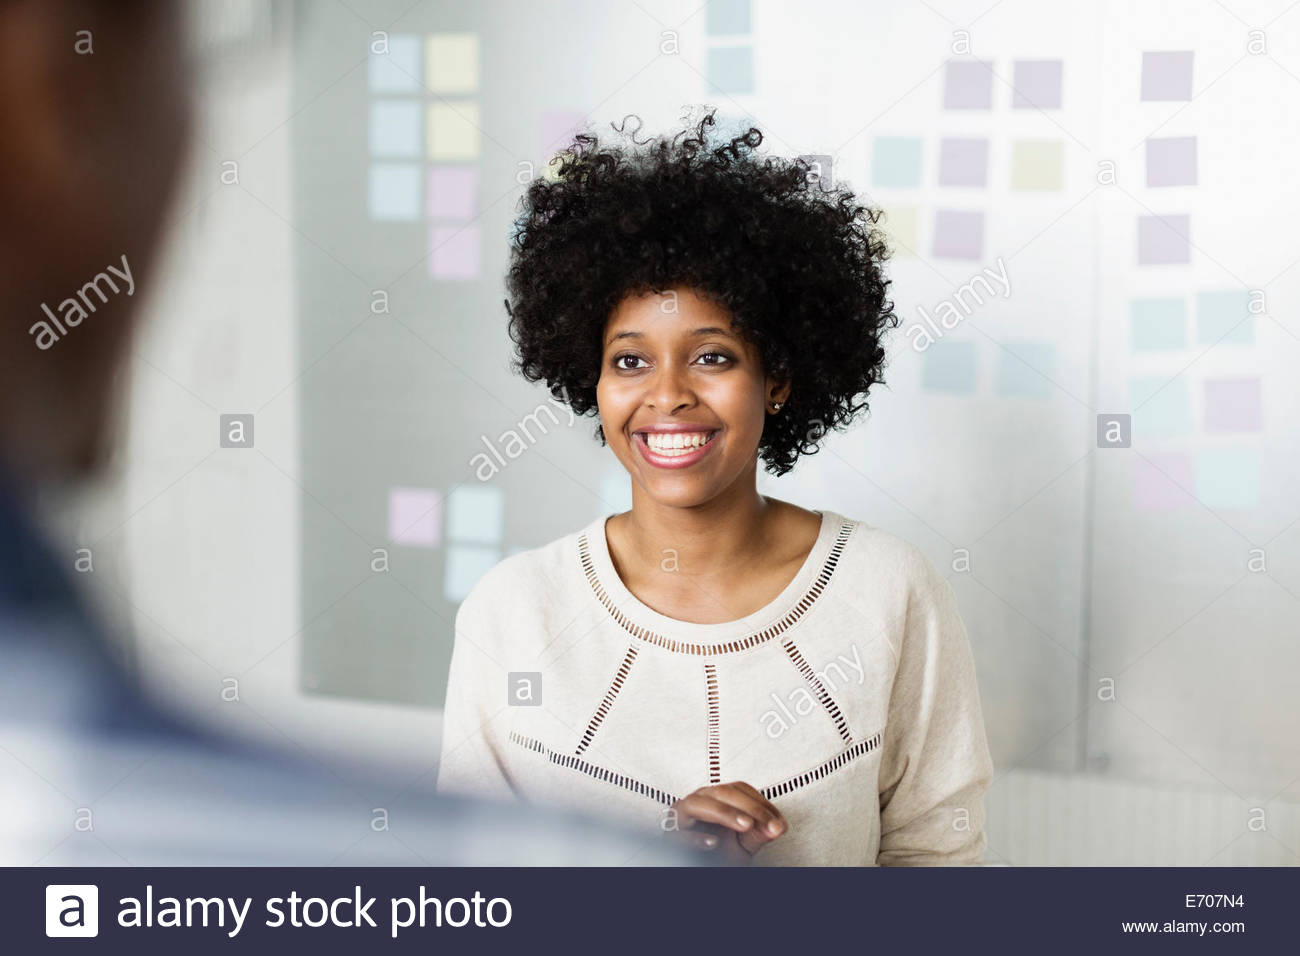 Portrait of young woman smiling - Stock Image